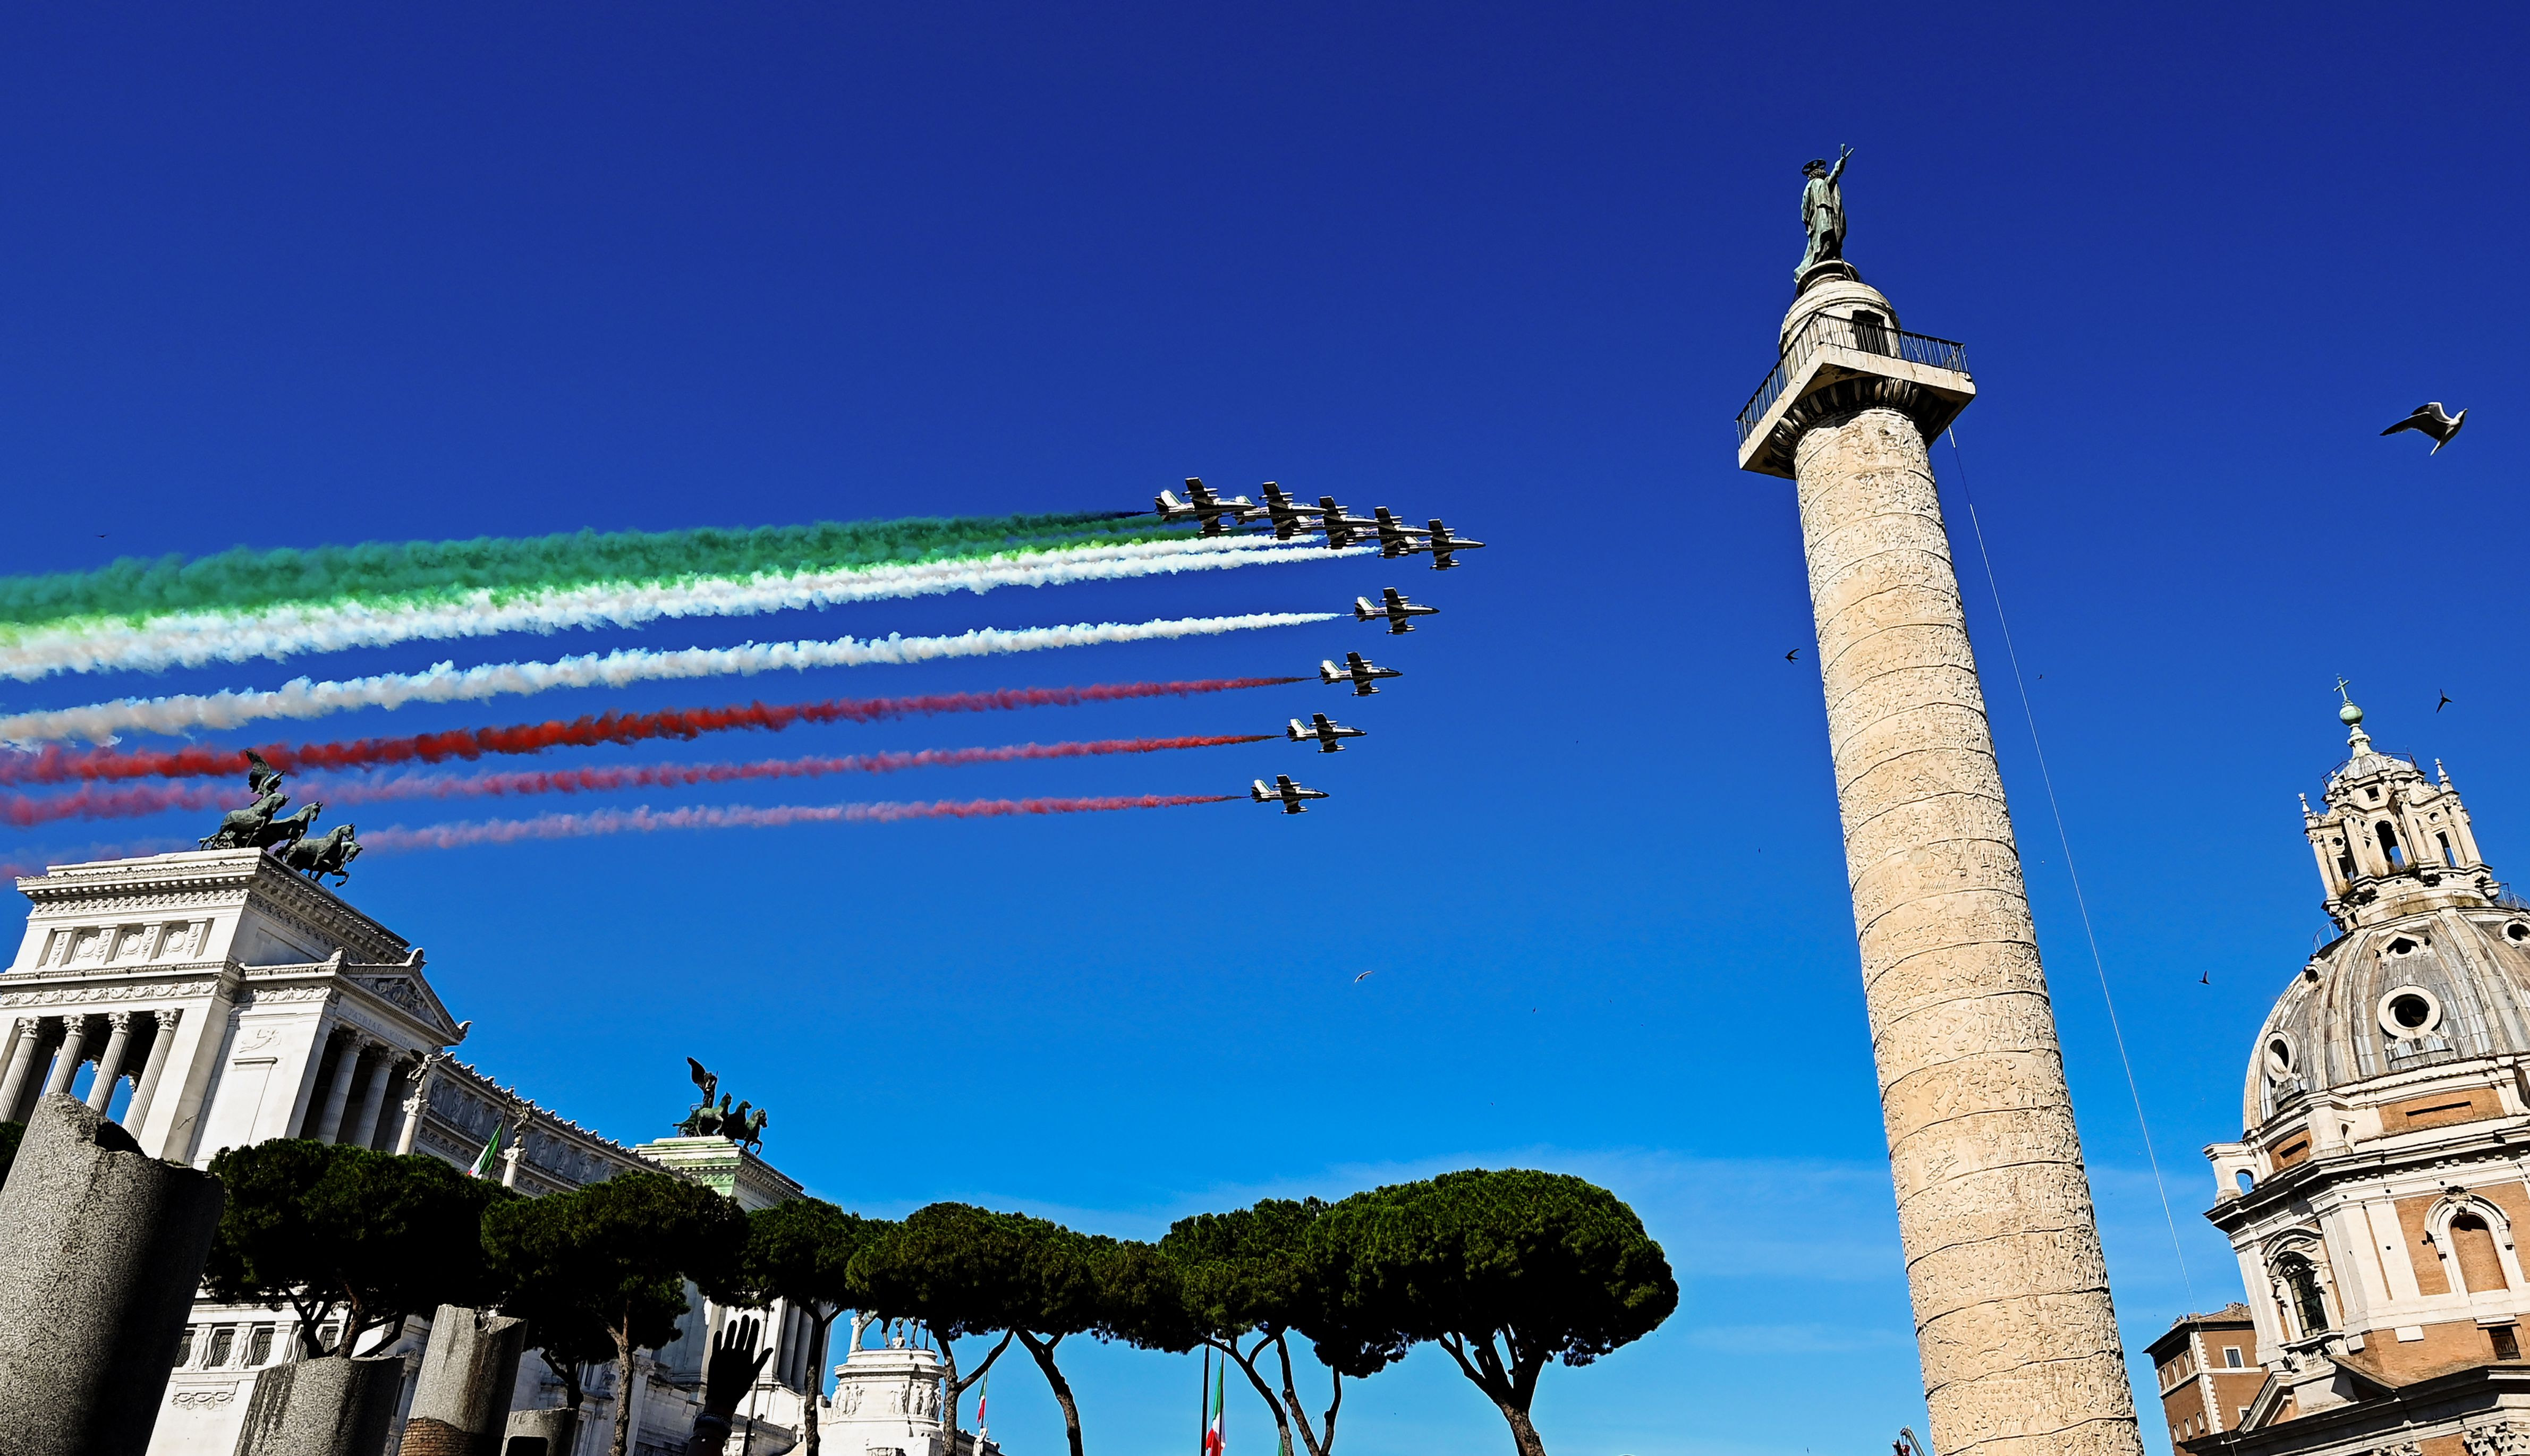 The Italian Air Force acrobatic unit Frecce Tricolori (Tricolored Arrows) perform over the Altare della Patria - King Vittorio Emanuele II monument and Trajan's column in Rome on June 2, 2020 as part of Republic Day ceremonies, as the country eases its lockdown aimed at curbing the spread of the COVID-19 infection, caused by the novel coronavirus. (Photo by Vincenzo PINTO / AFP) (Photo by VINCENZO PINTO/AFP via Getty Images)